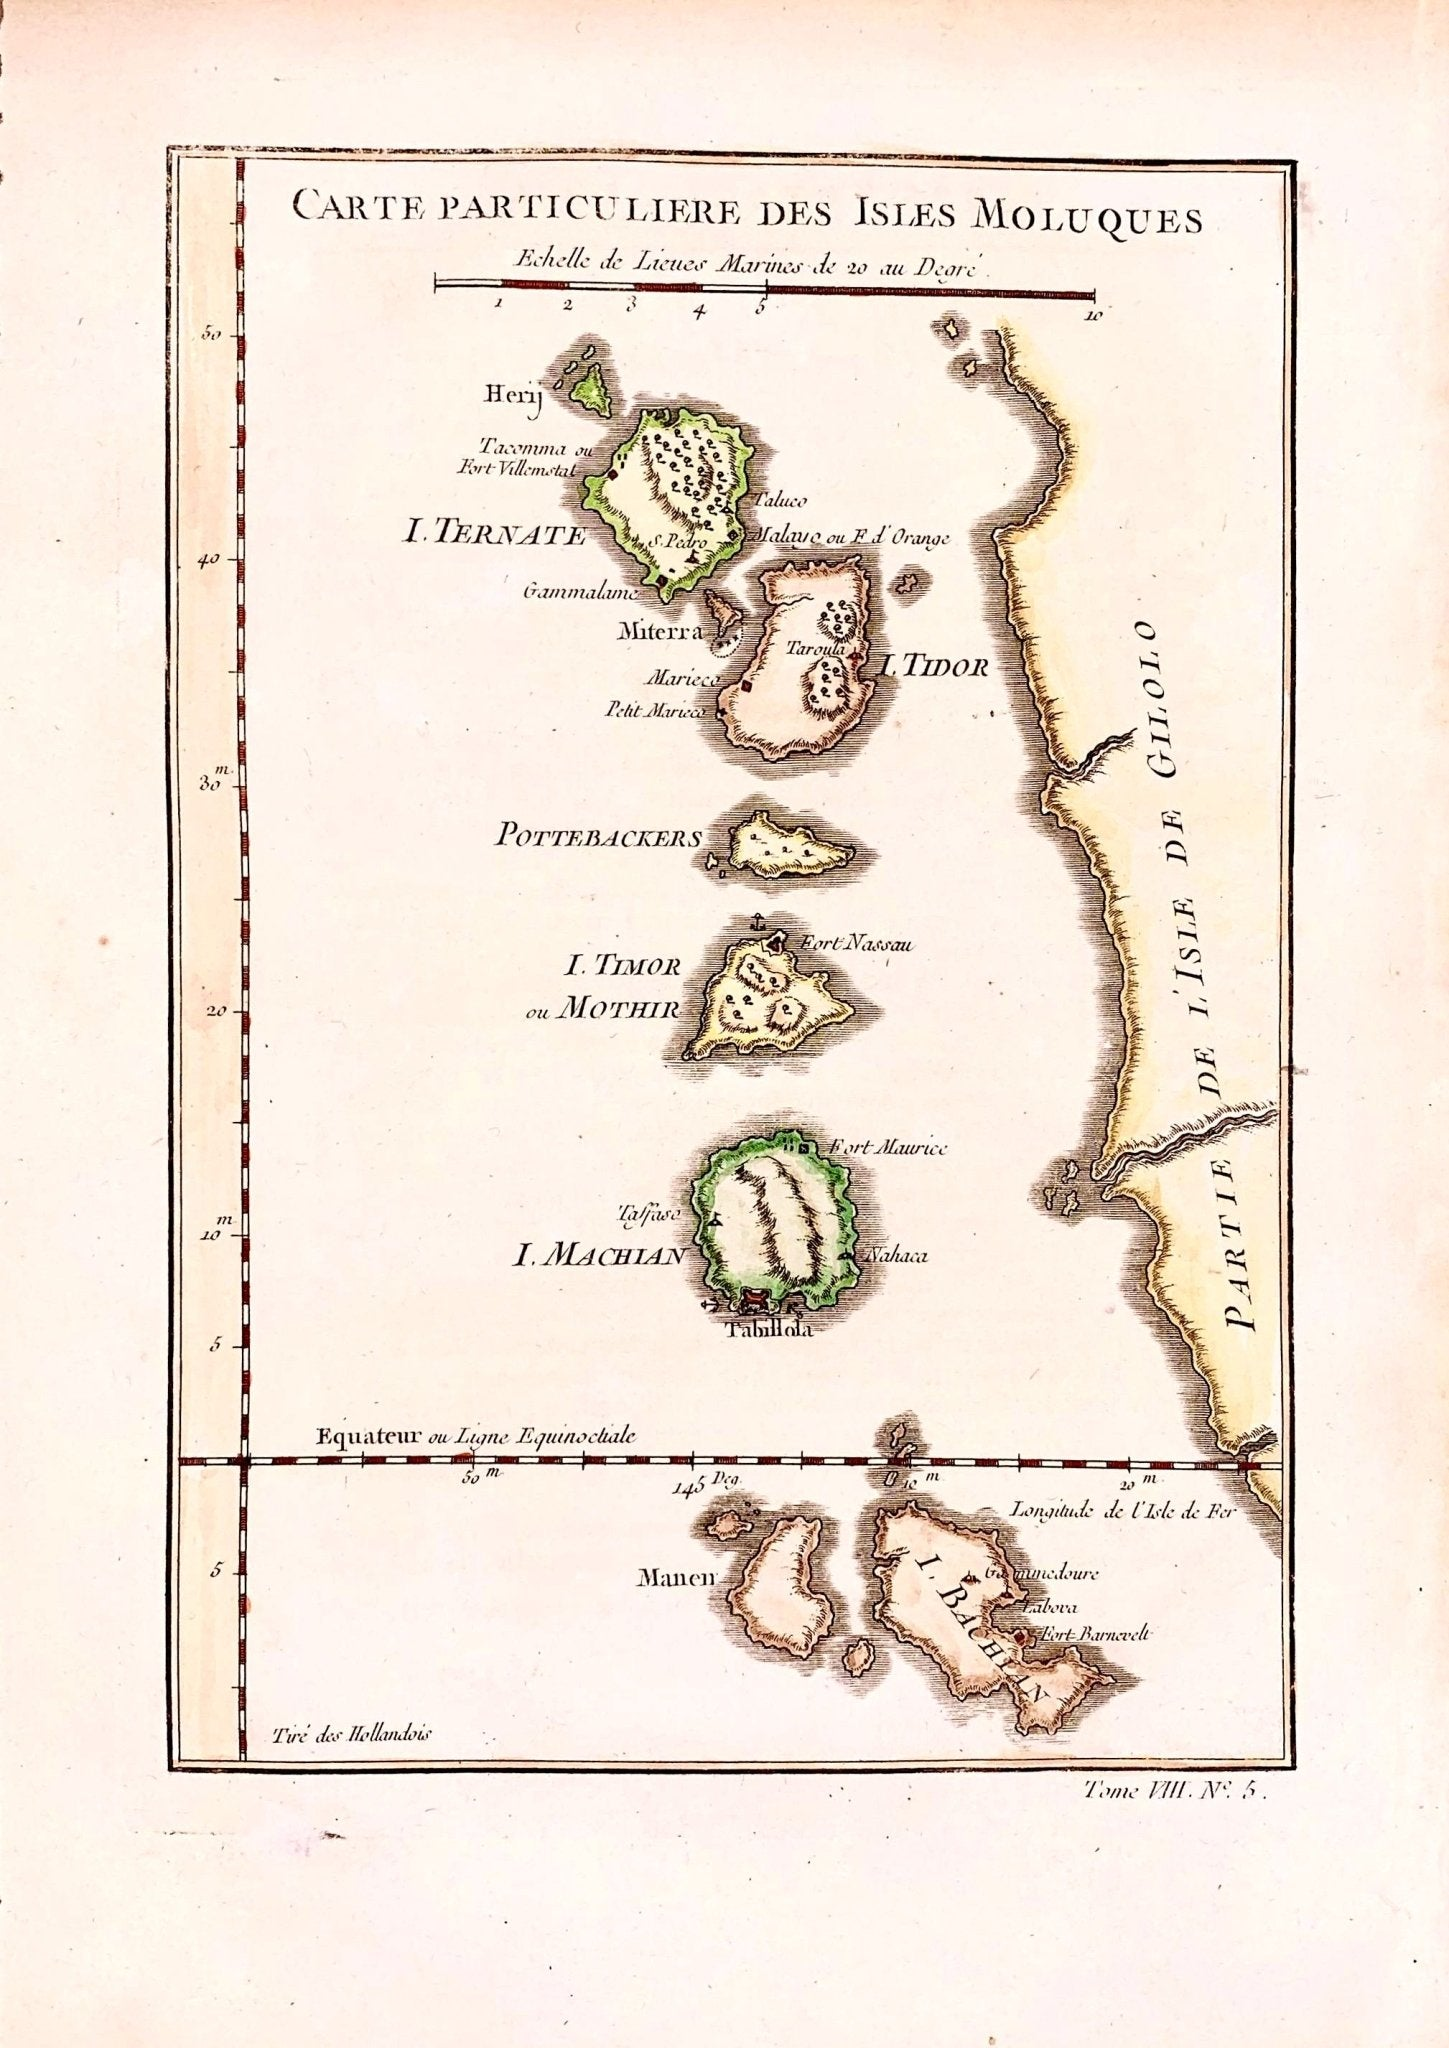 Indonesië, Maluku Islands; Molukken ; Bellin - Carte particuliere des Isles Moluques - 1751-1760 - World of Maps & Travel